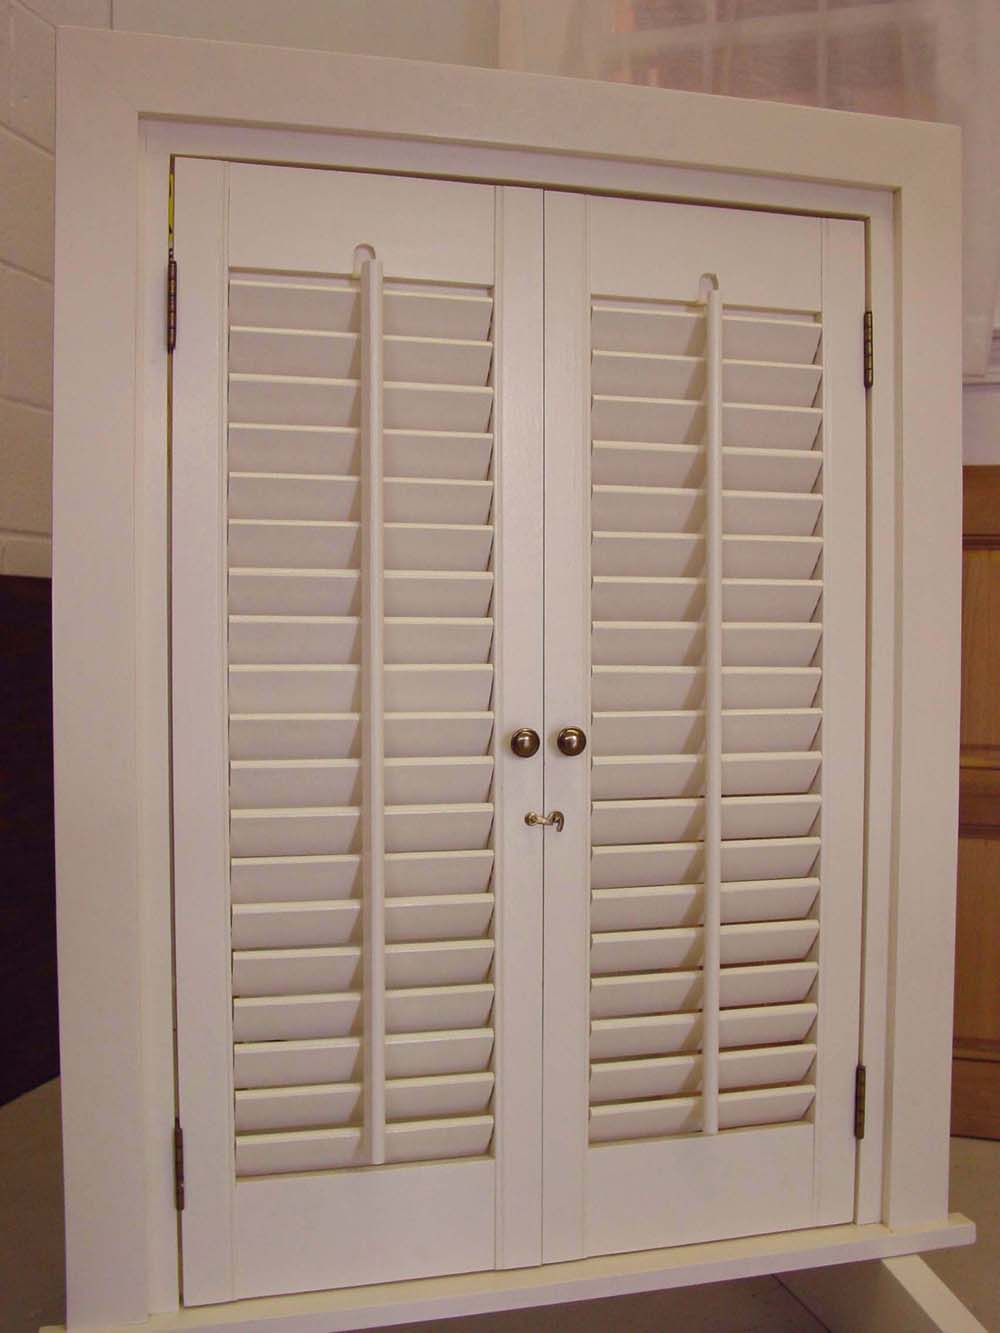 shutters varies real p homebasics wood plantation size interior windows wooden price for walnut by